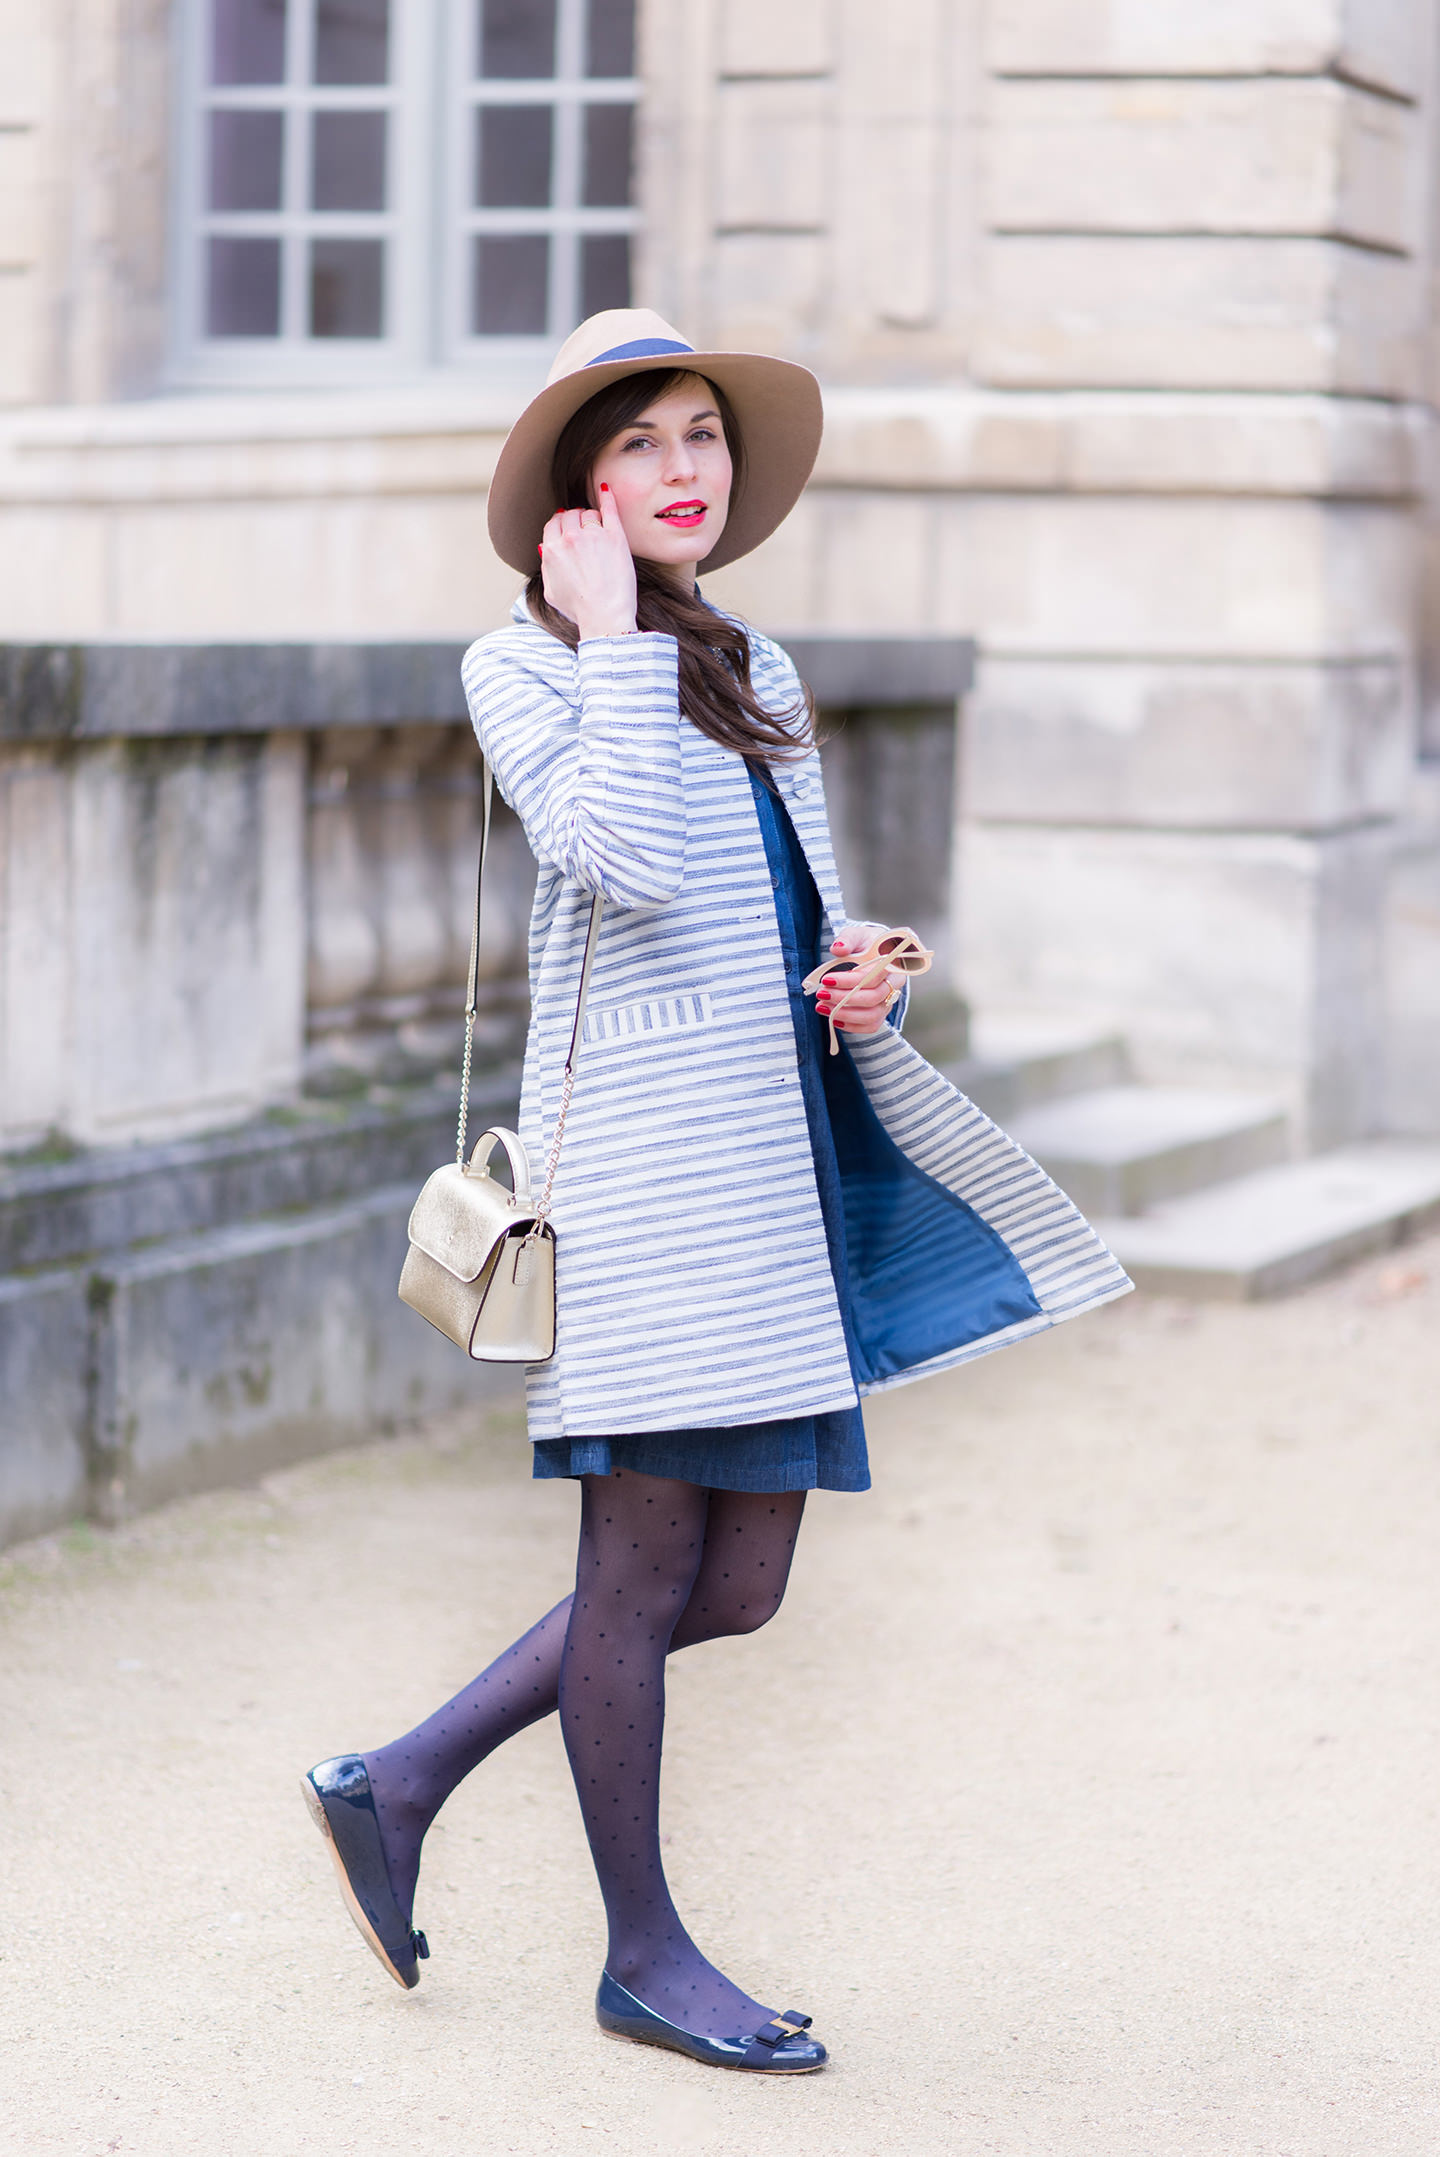 Blog-Mode-And-The-City-Looks-Le-manteau-raye-Mademoiselle-R